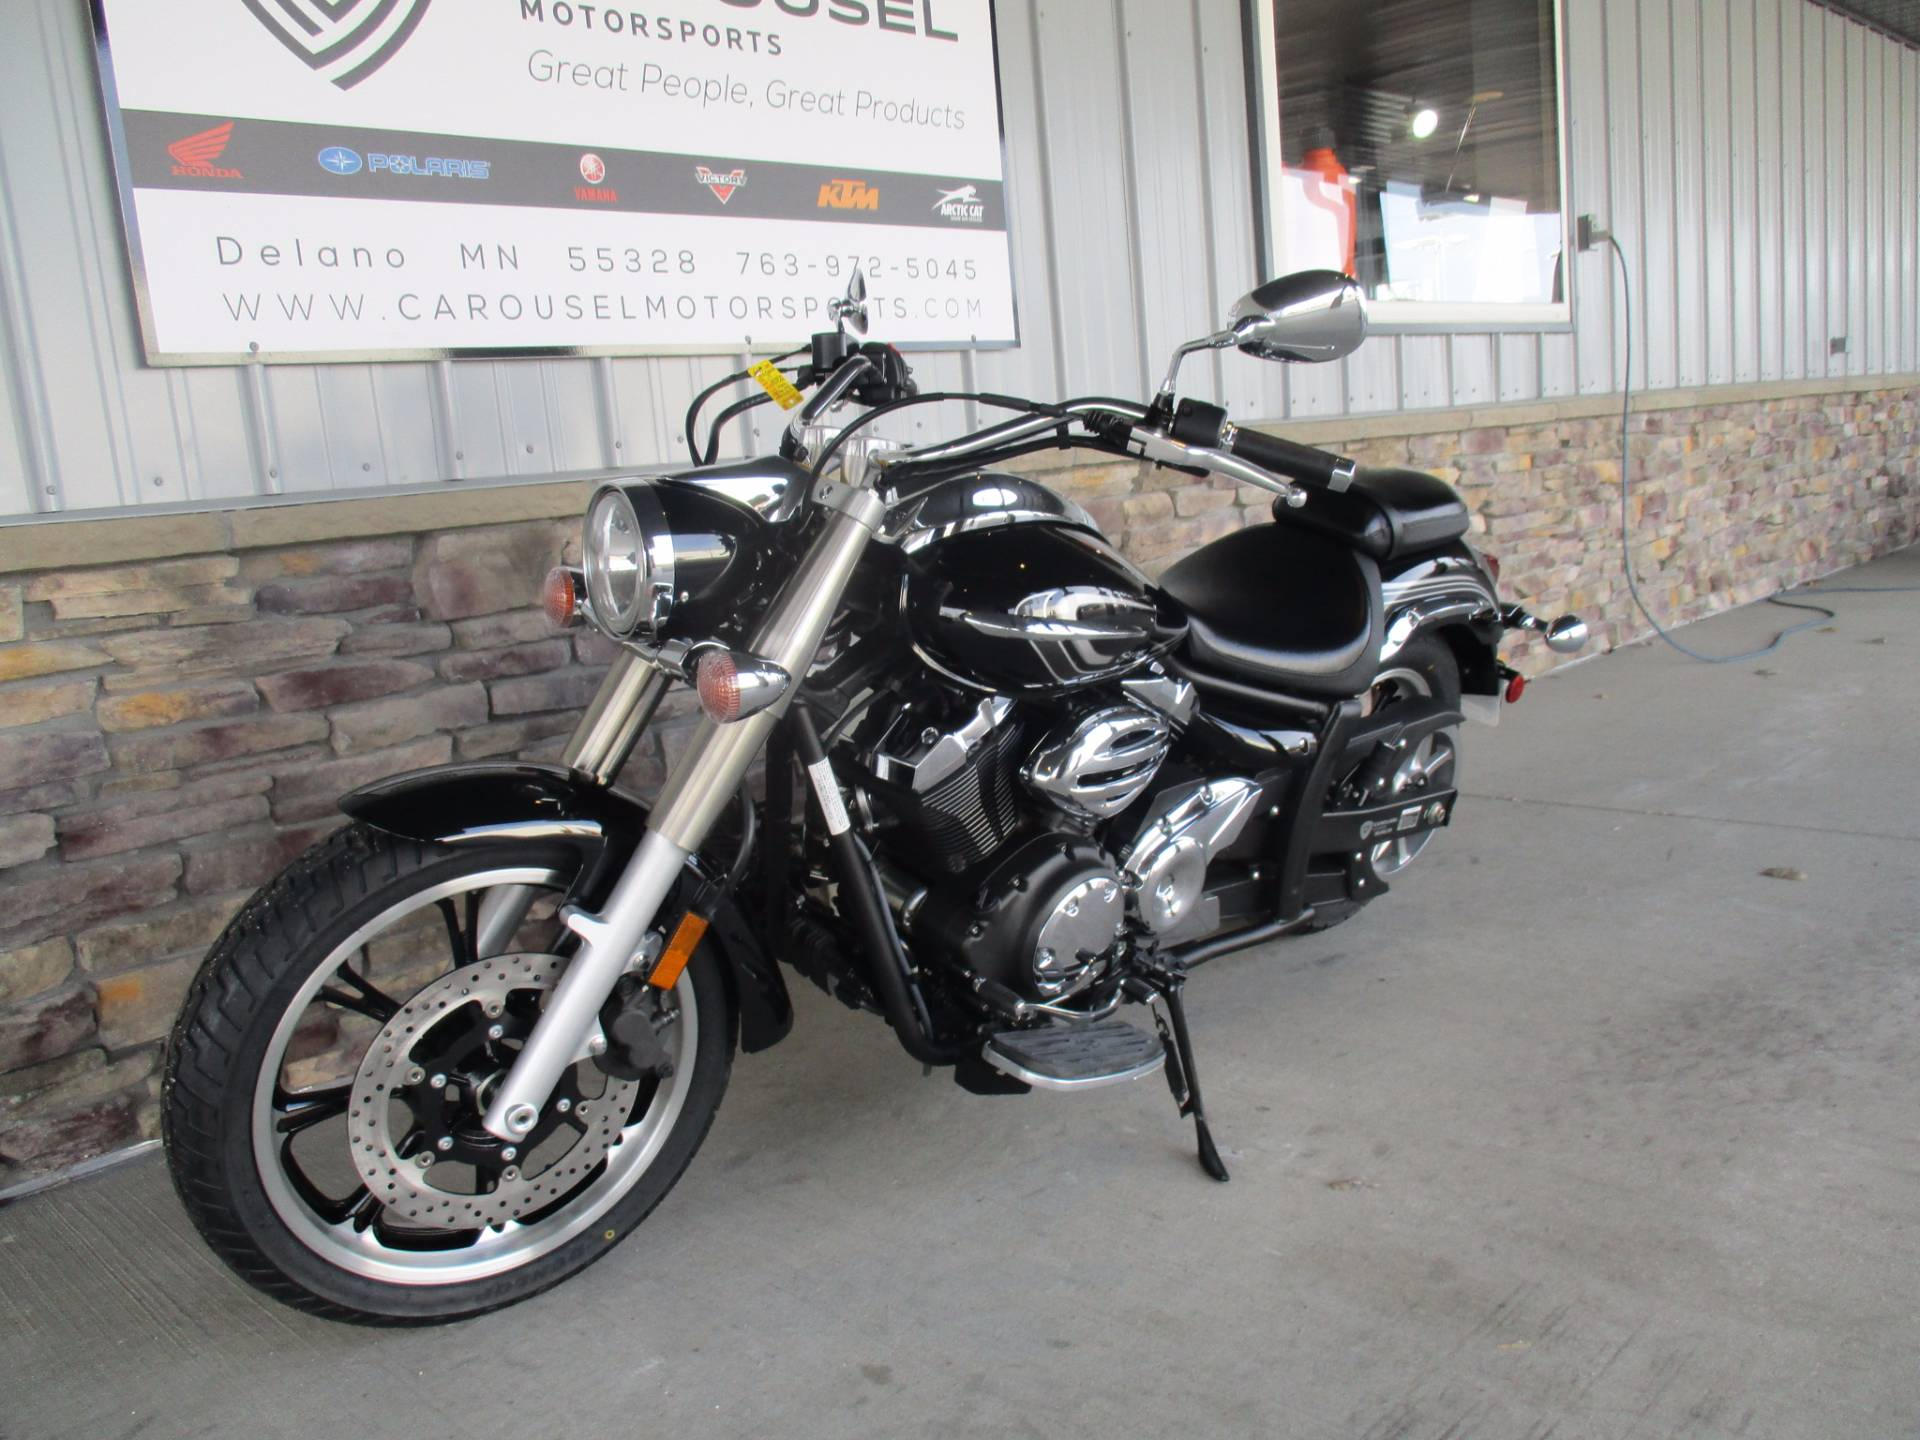 2015 Yamaha V Star 950 in Delano, Minnesota